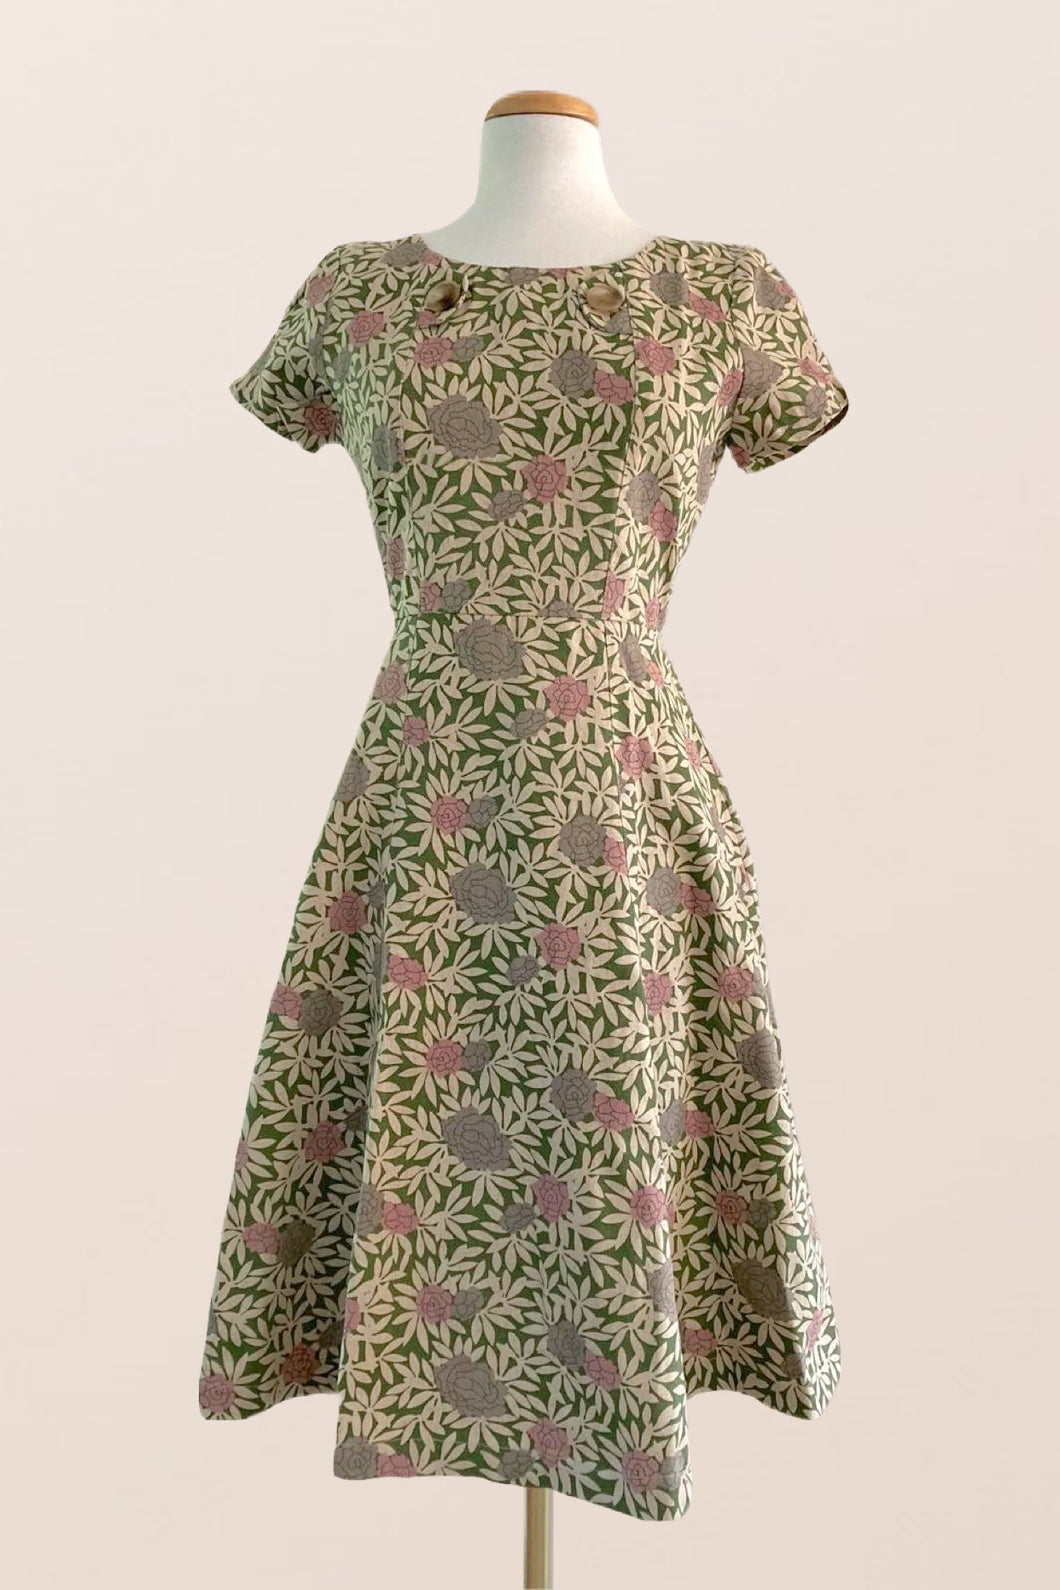 Carla Green & Dusty Pink Floral Dress